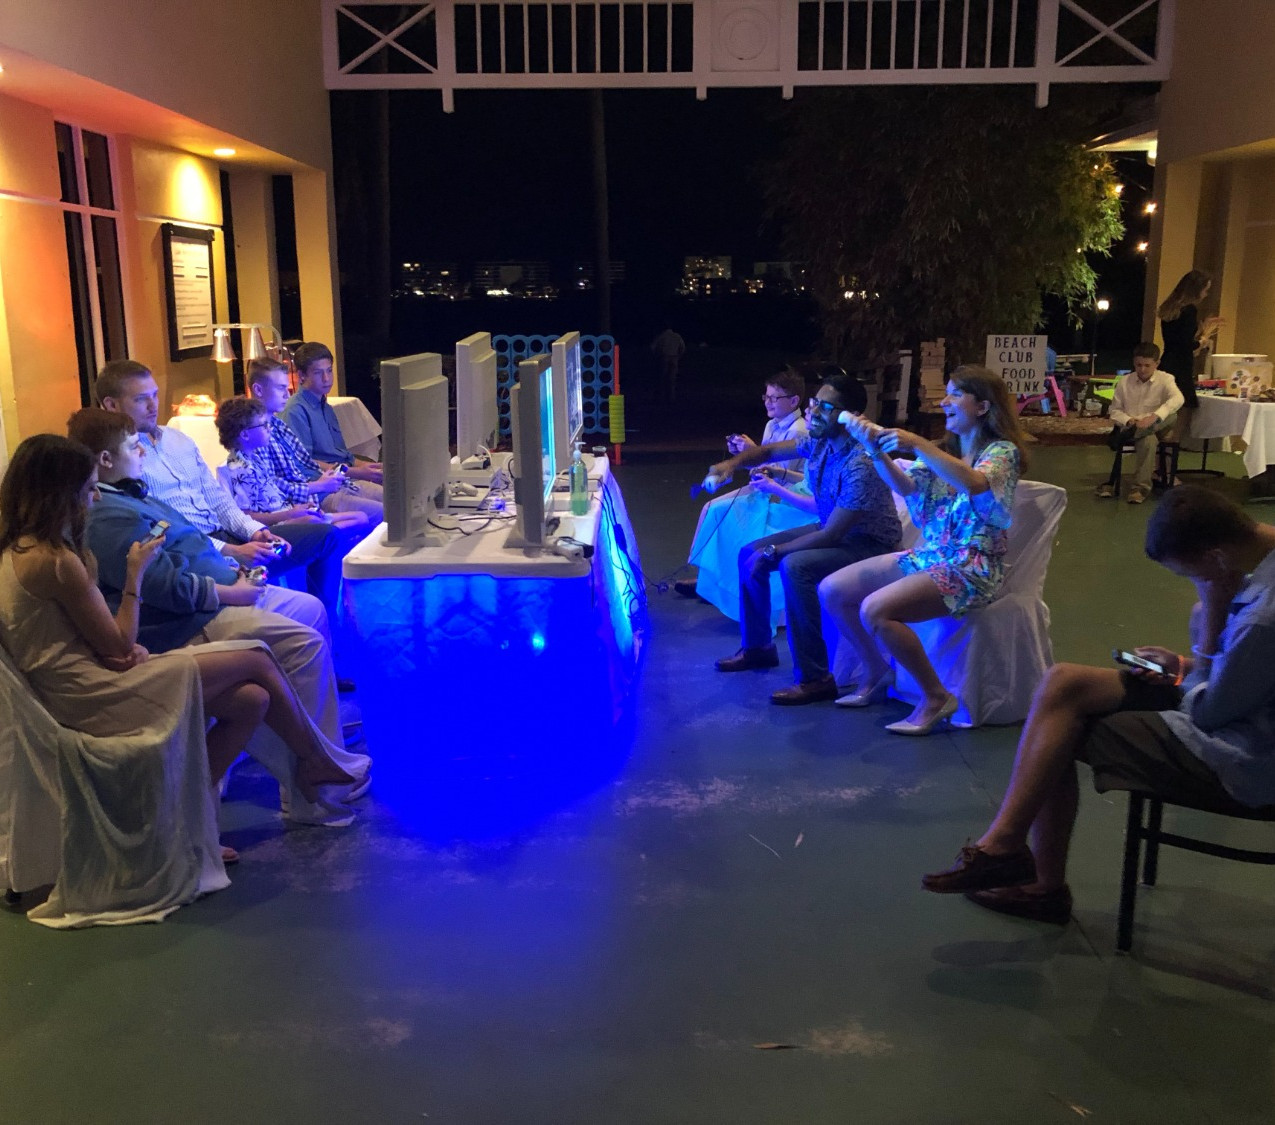 Fortnite Party Ideas - GameonMVG - Hollywood 786-423-8759